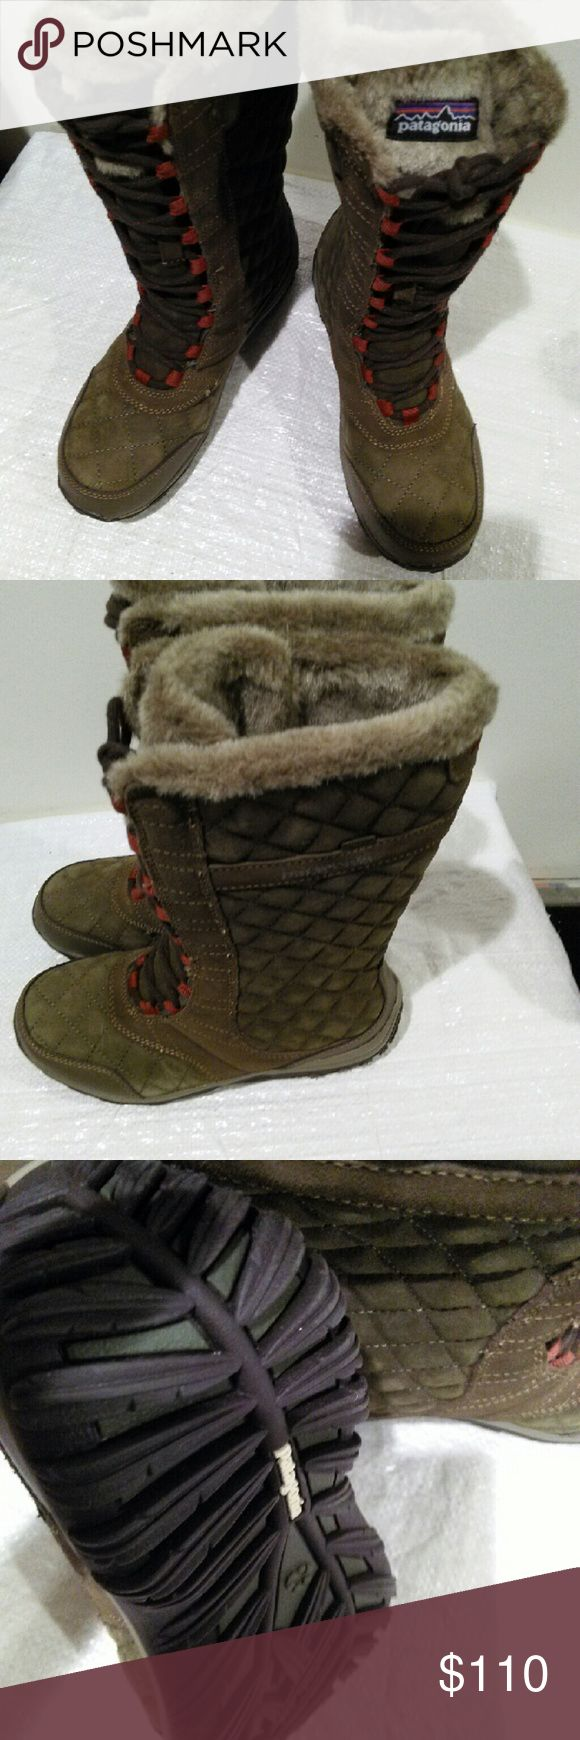 Female Patagonia winter boots Brand New and never worn Patagonia Shoes Winter & Rain Boots